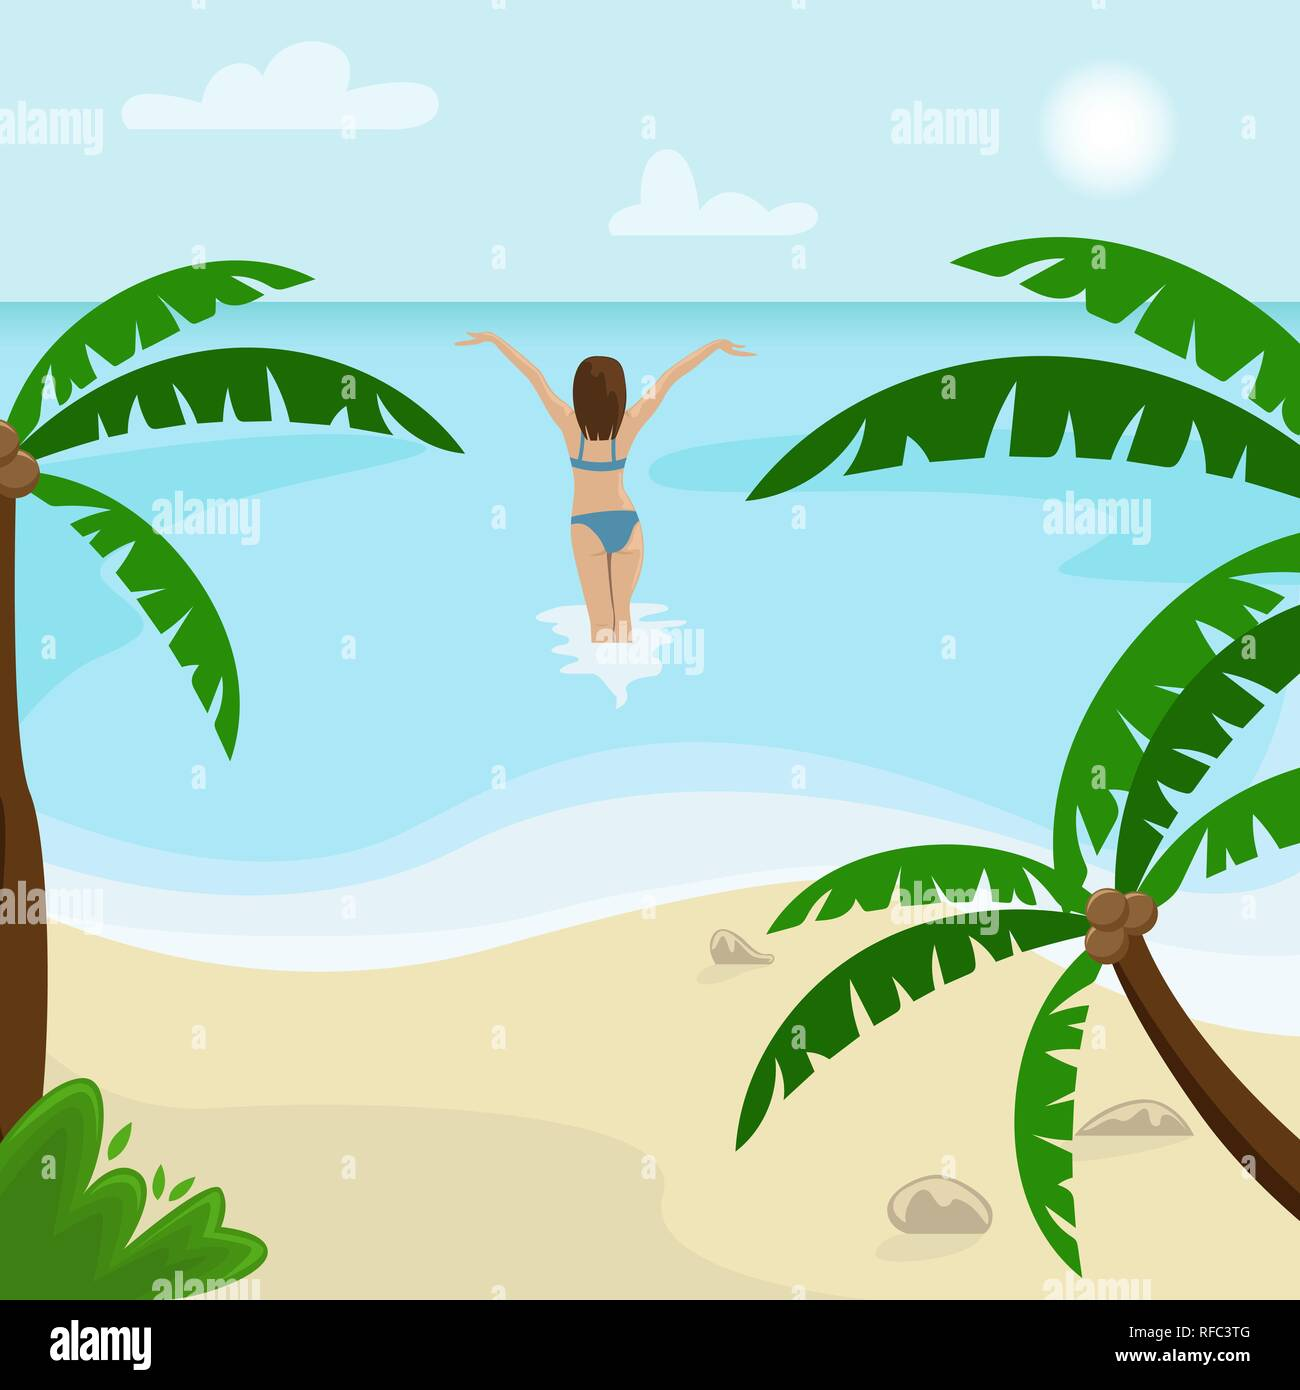 Beach landscape with palm trees. Girl in a swimsuit is in the sea. Flat vector illustration. - Stock Vector